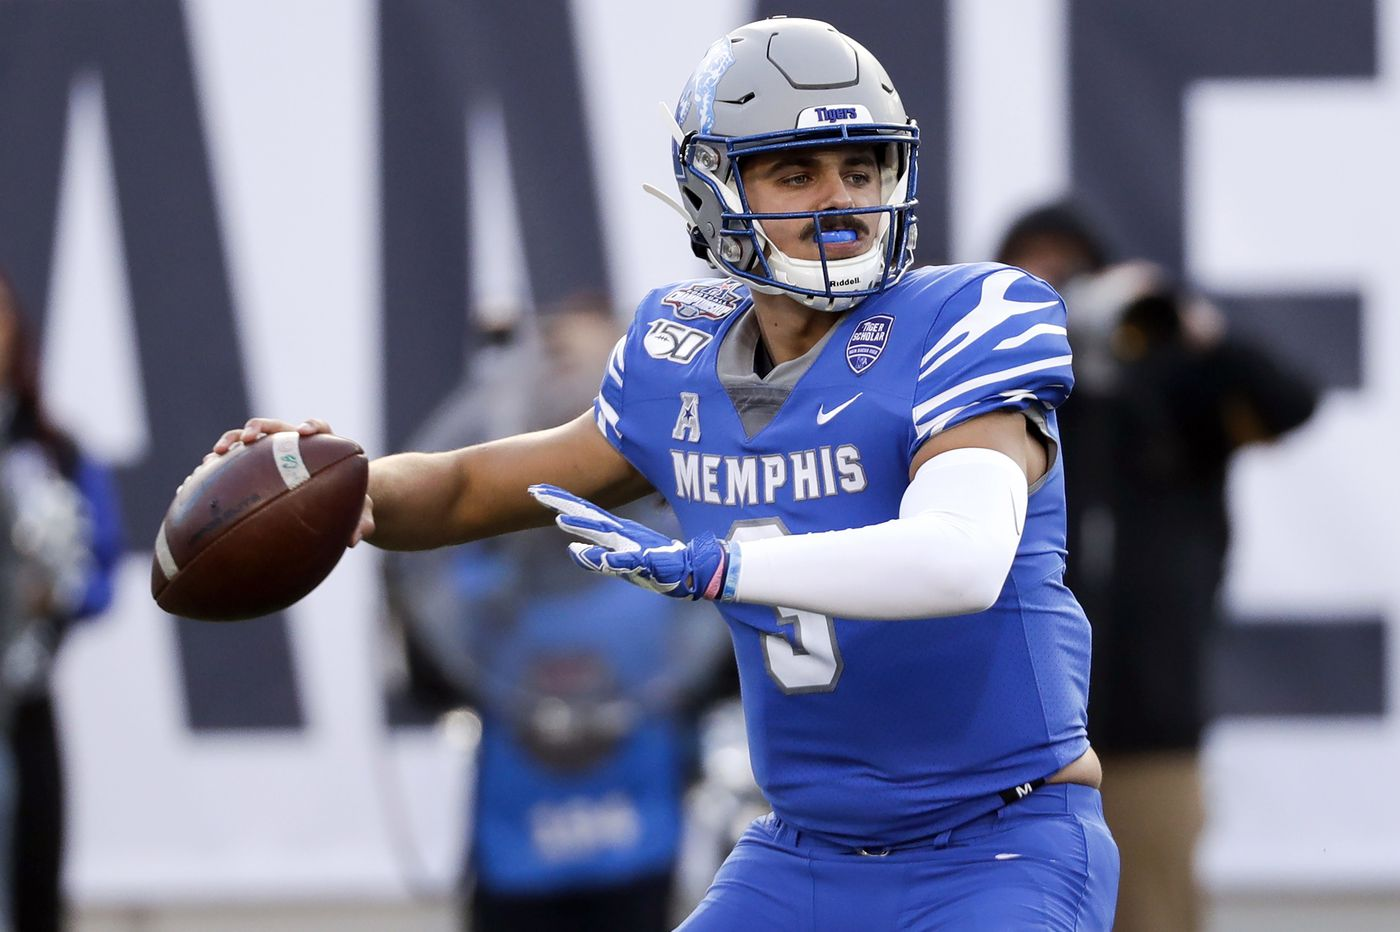 Keeping up with Memphis' high-scoring attack will be Temple's primary mission